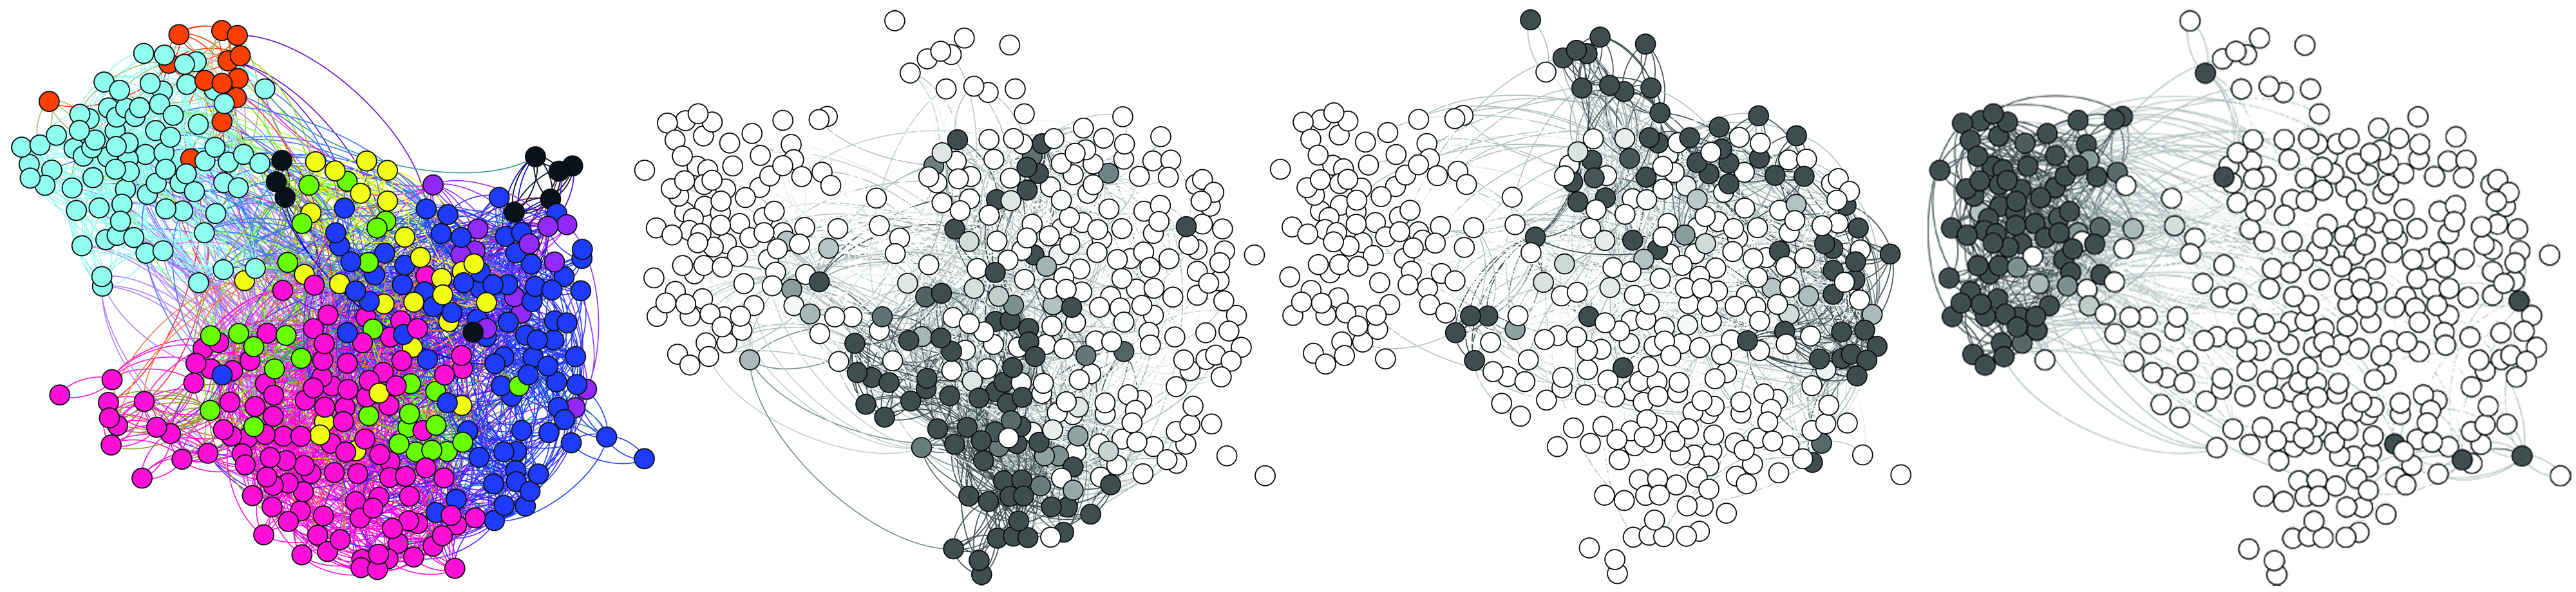 Networks of membership in four types of social communities for each node.